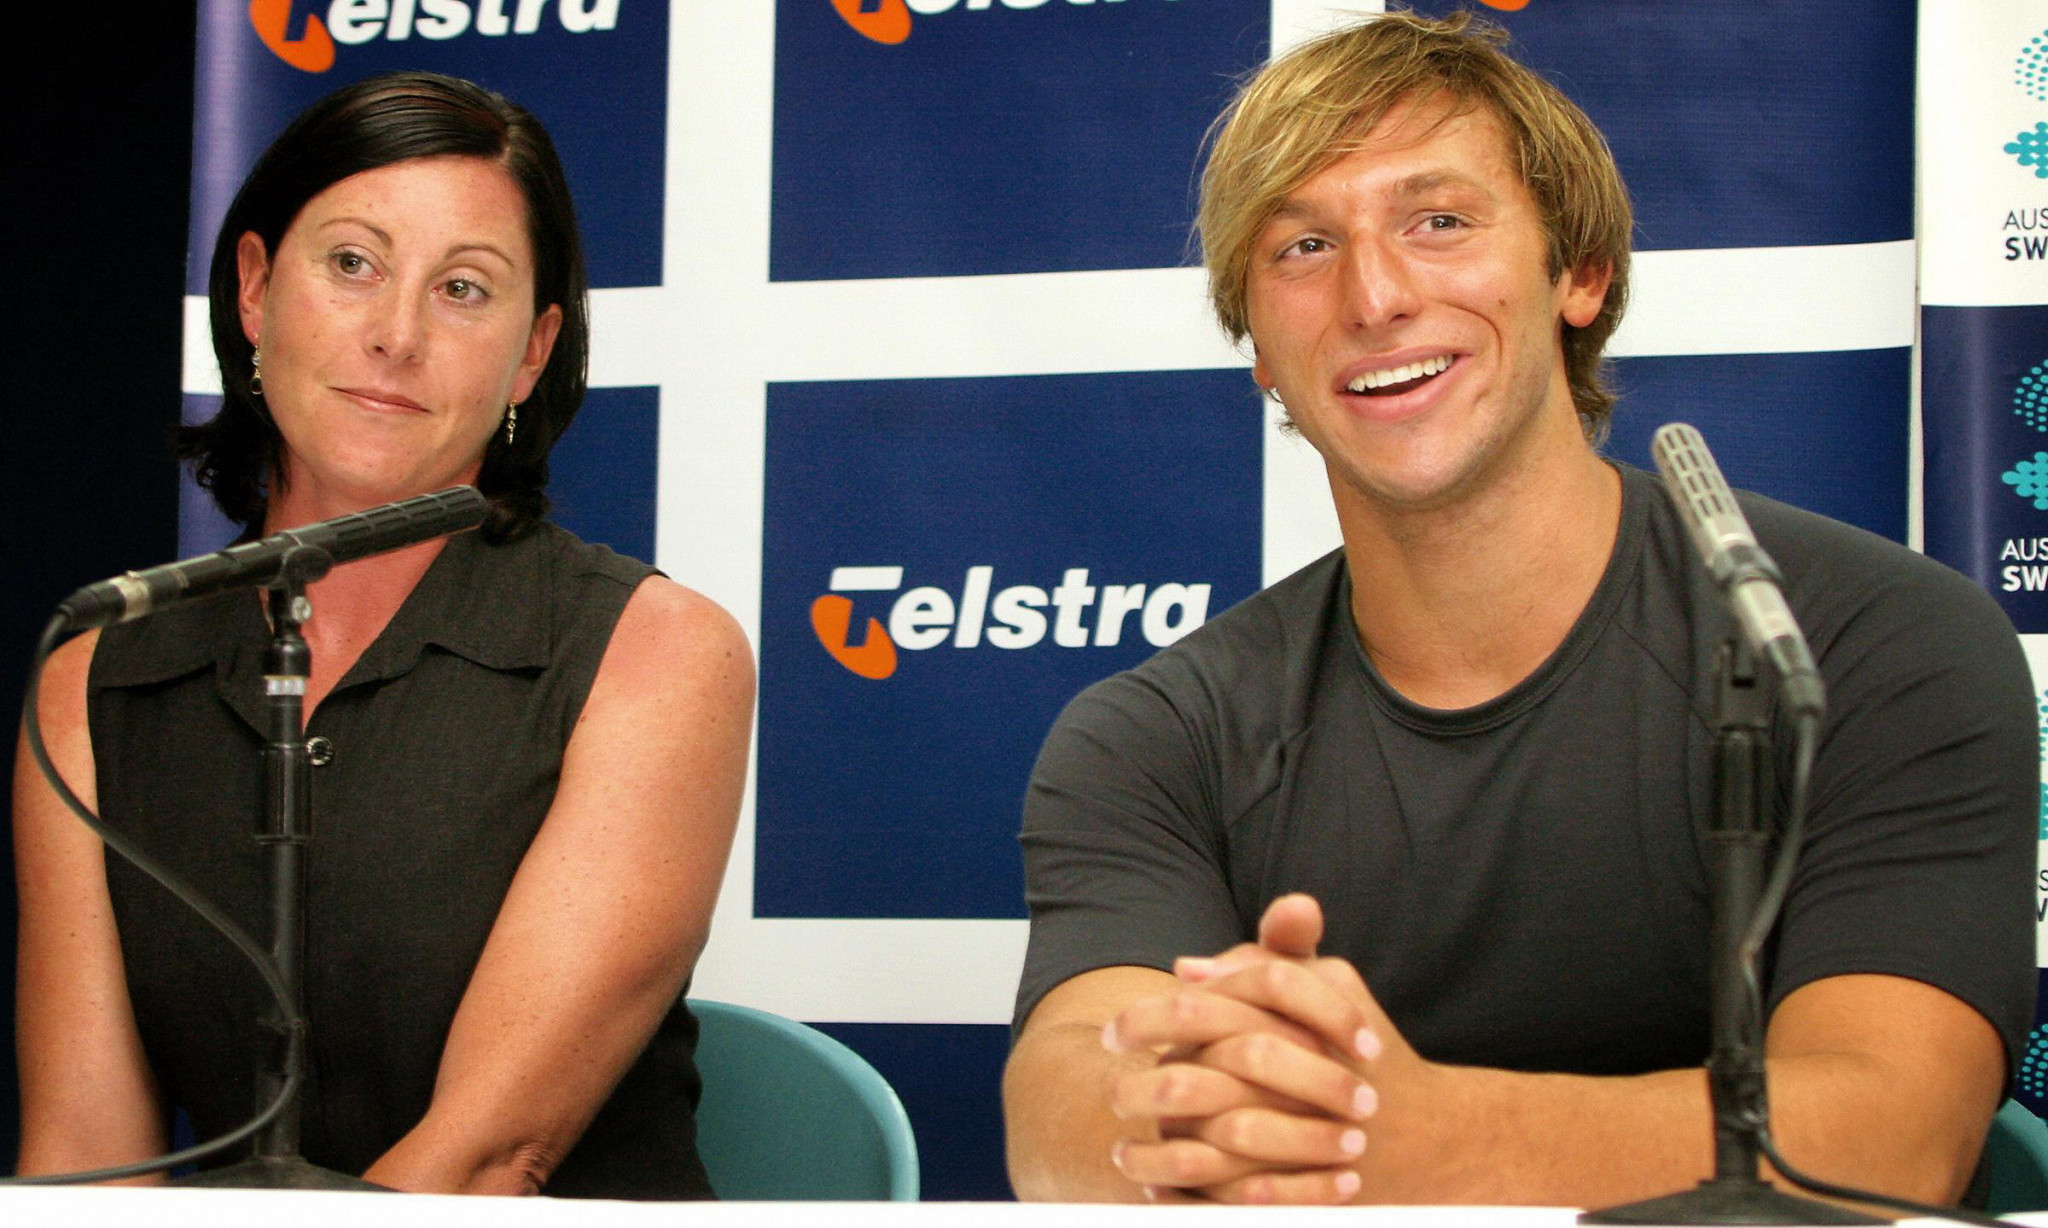 Tracey Menzies coached Ian Thorpe to Olympic gold medals in the 200m and 400m freestyle at Athens 2004 ©Getty Images